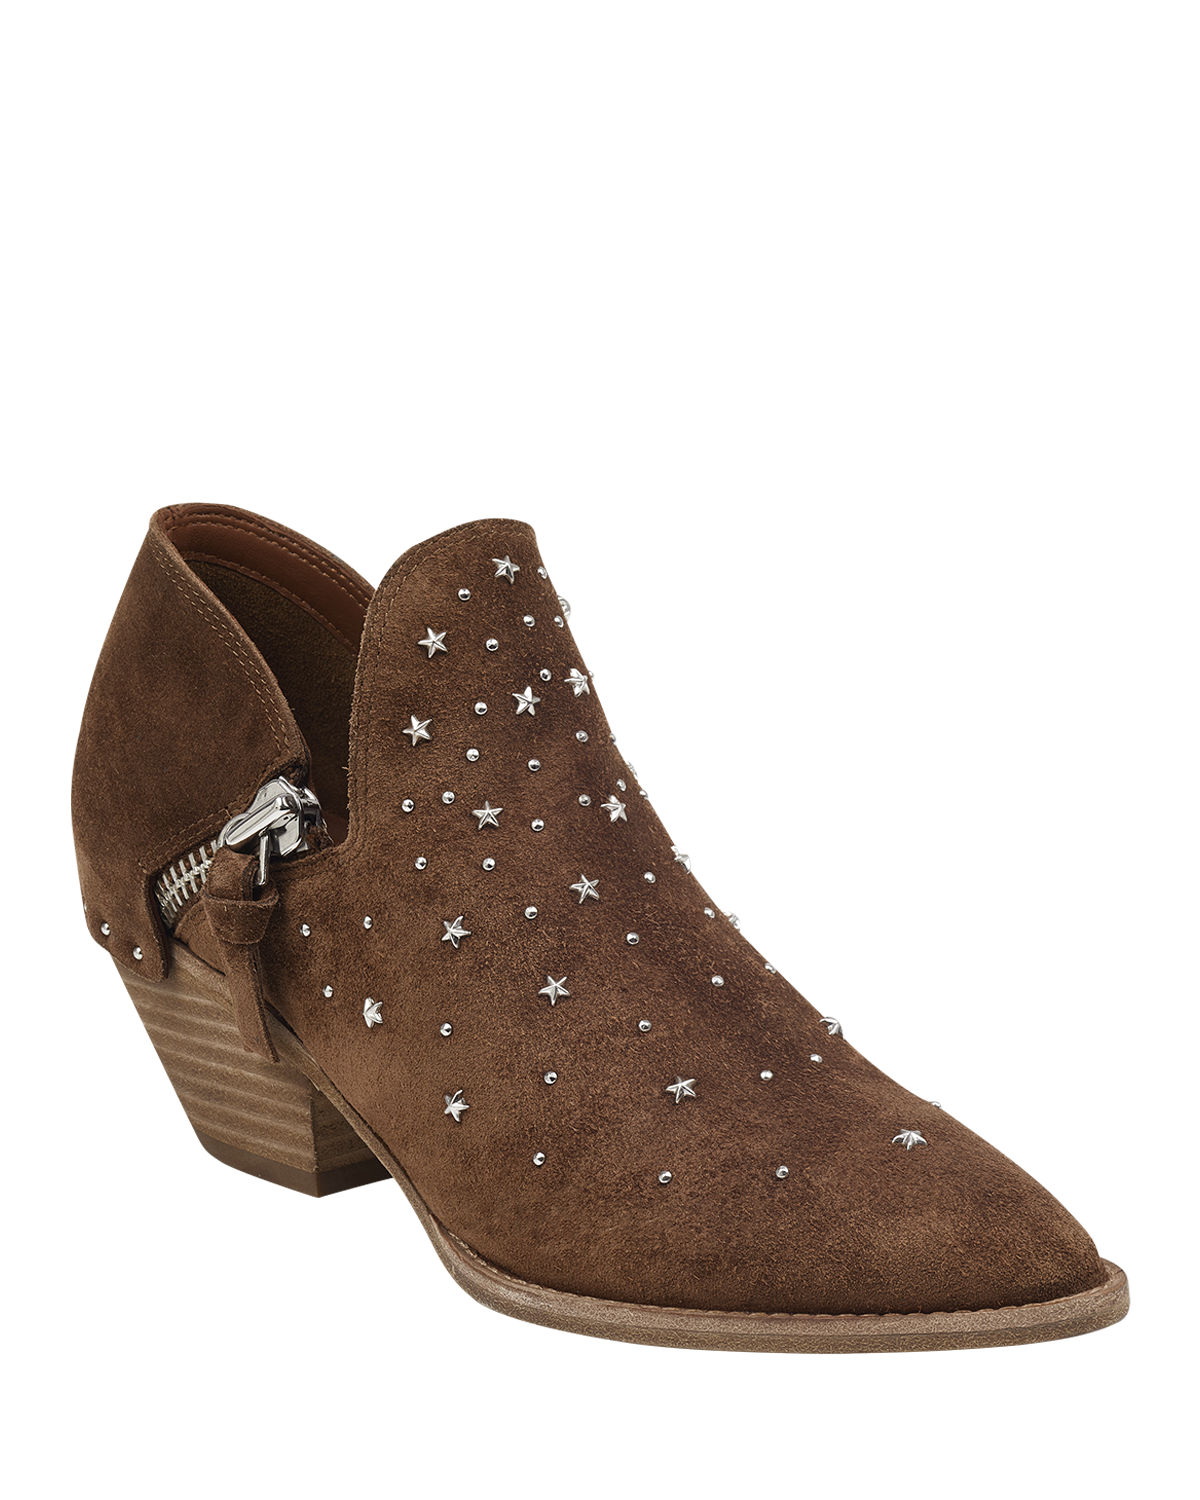 Haile Star Studded Suede Booties